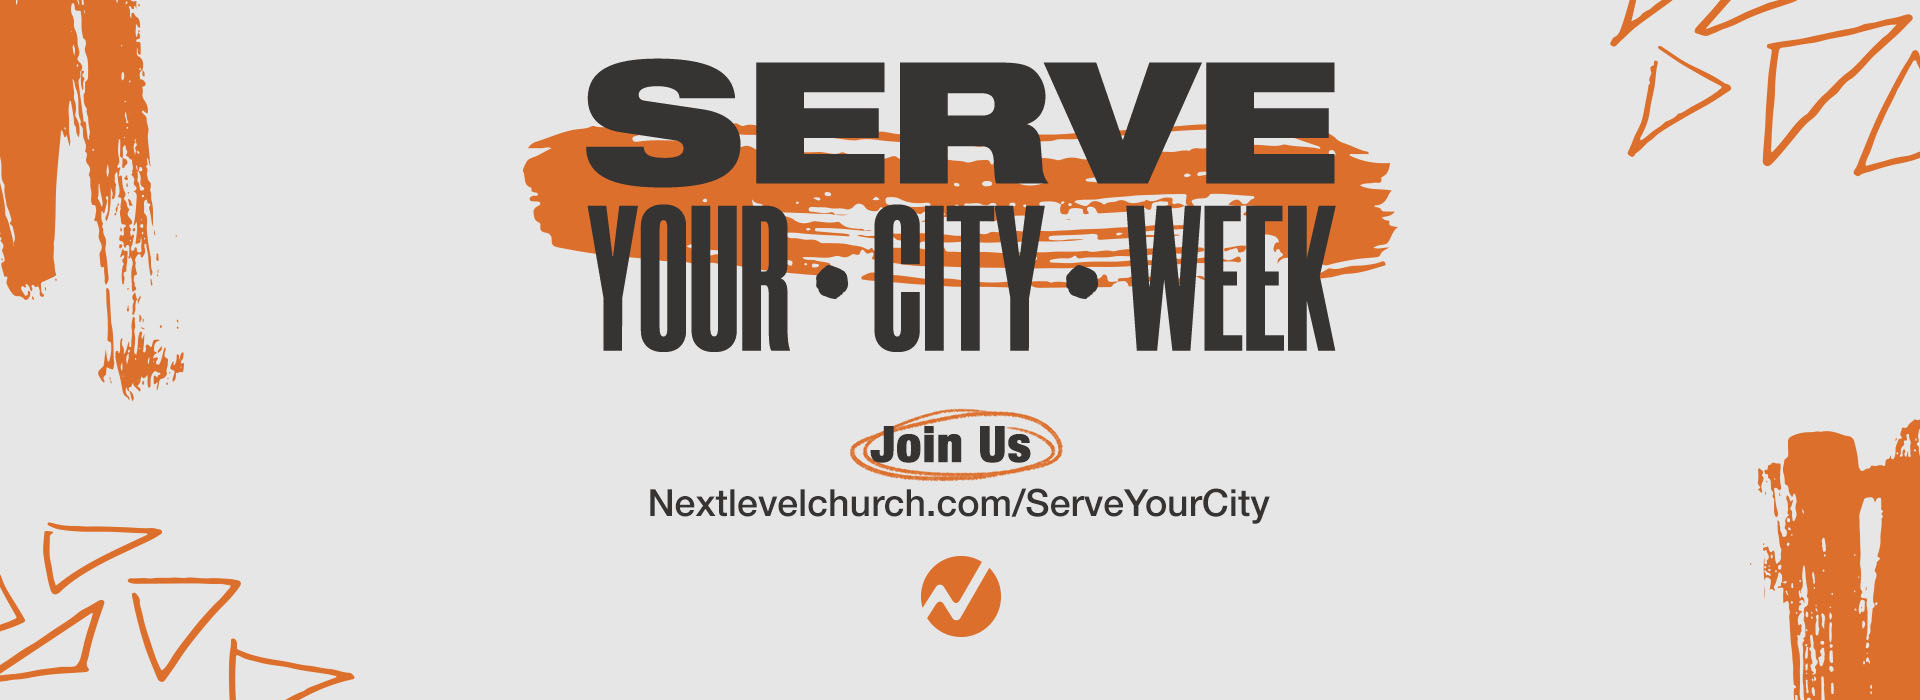 Serve Your City - Updated - 1920x700 - Title NO DATE (1) (1)